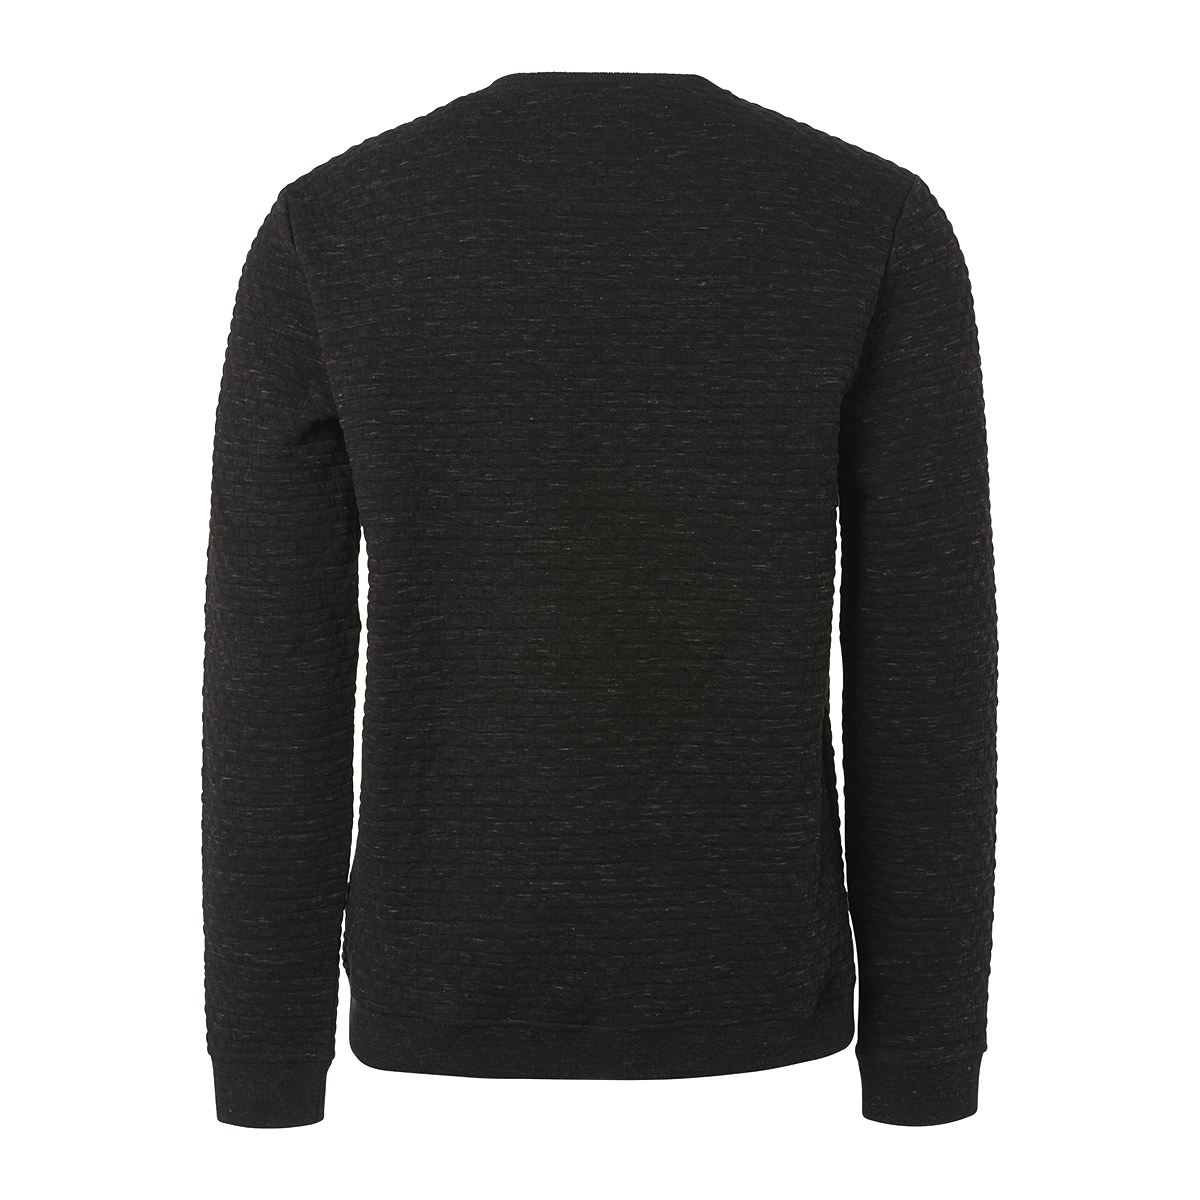 87100813 no-excess sweater 020 black